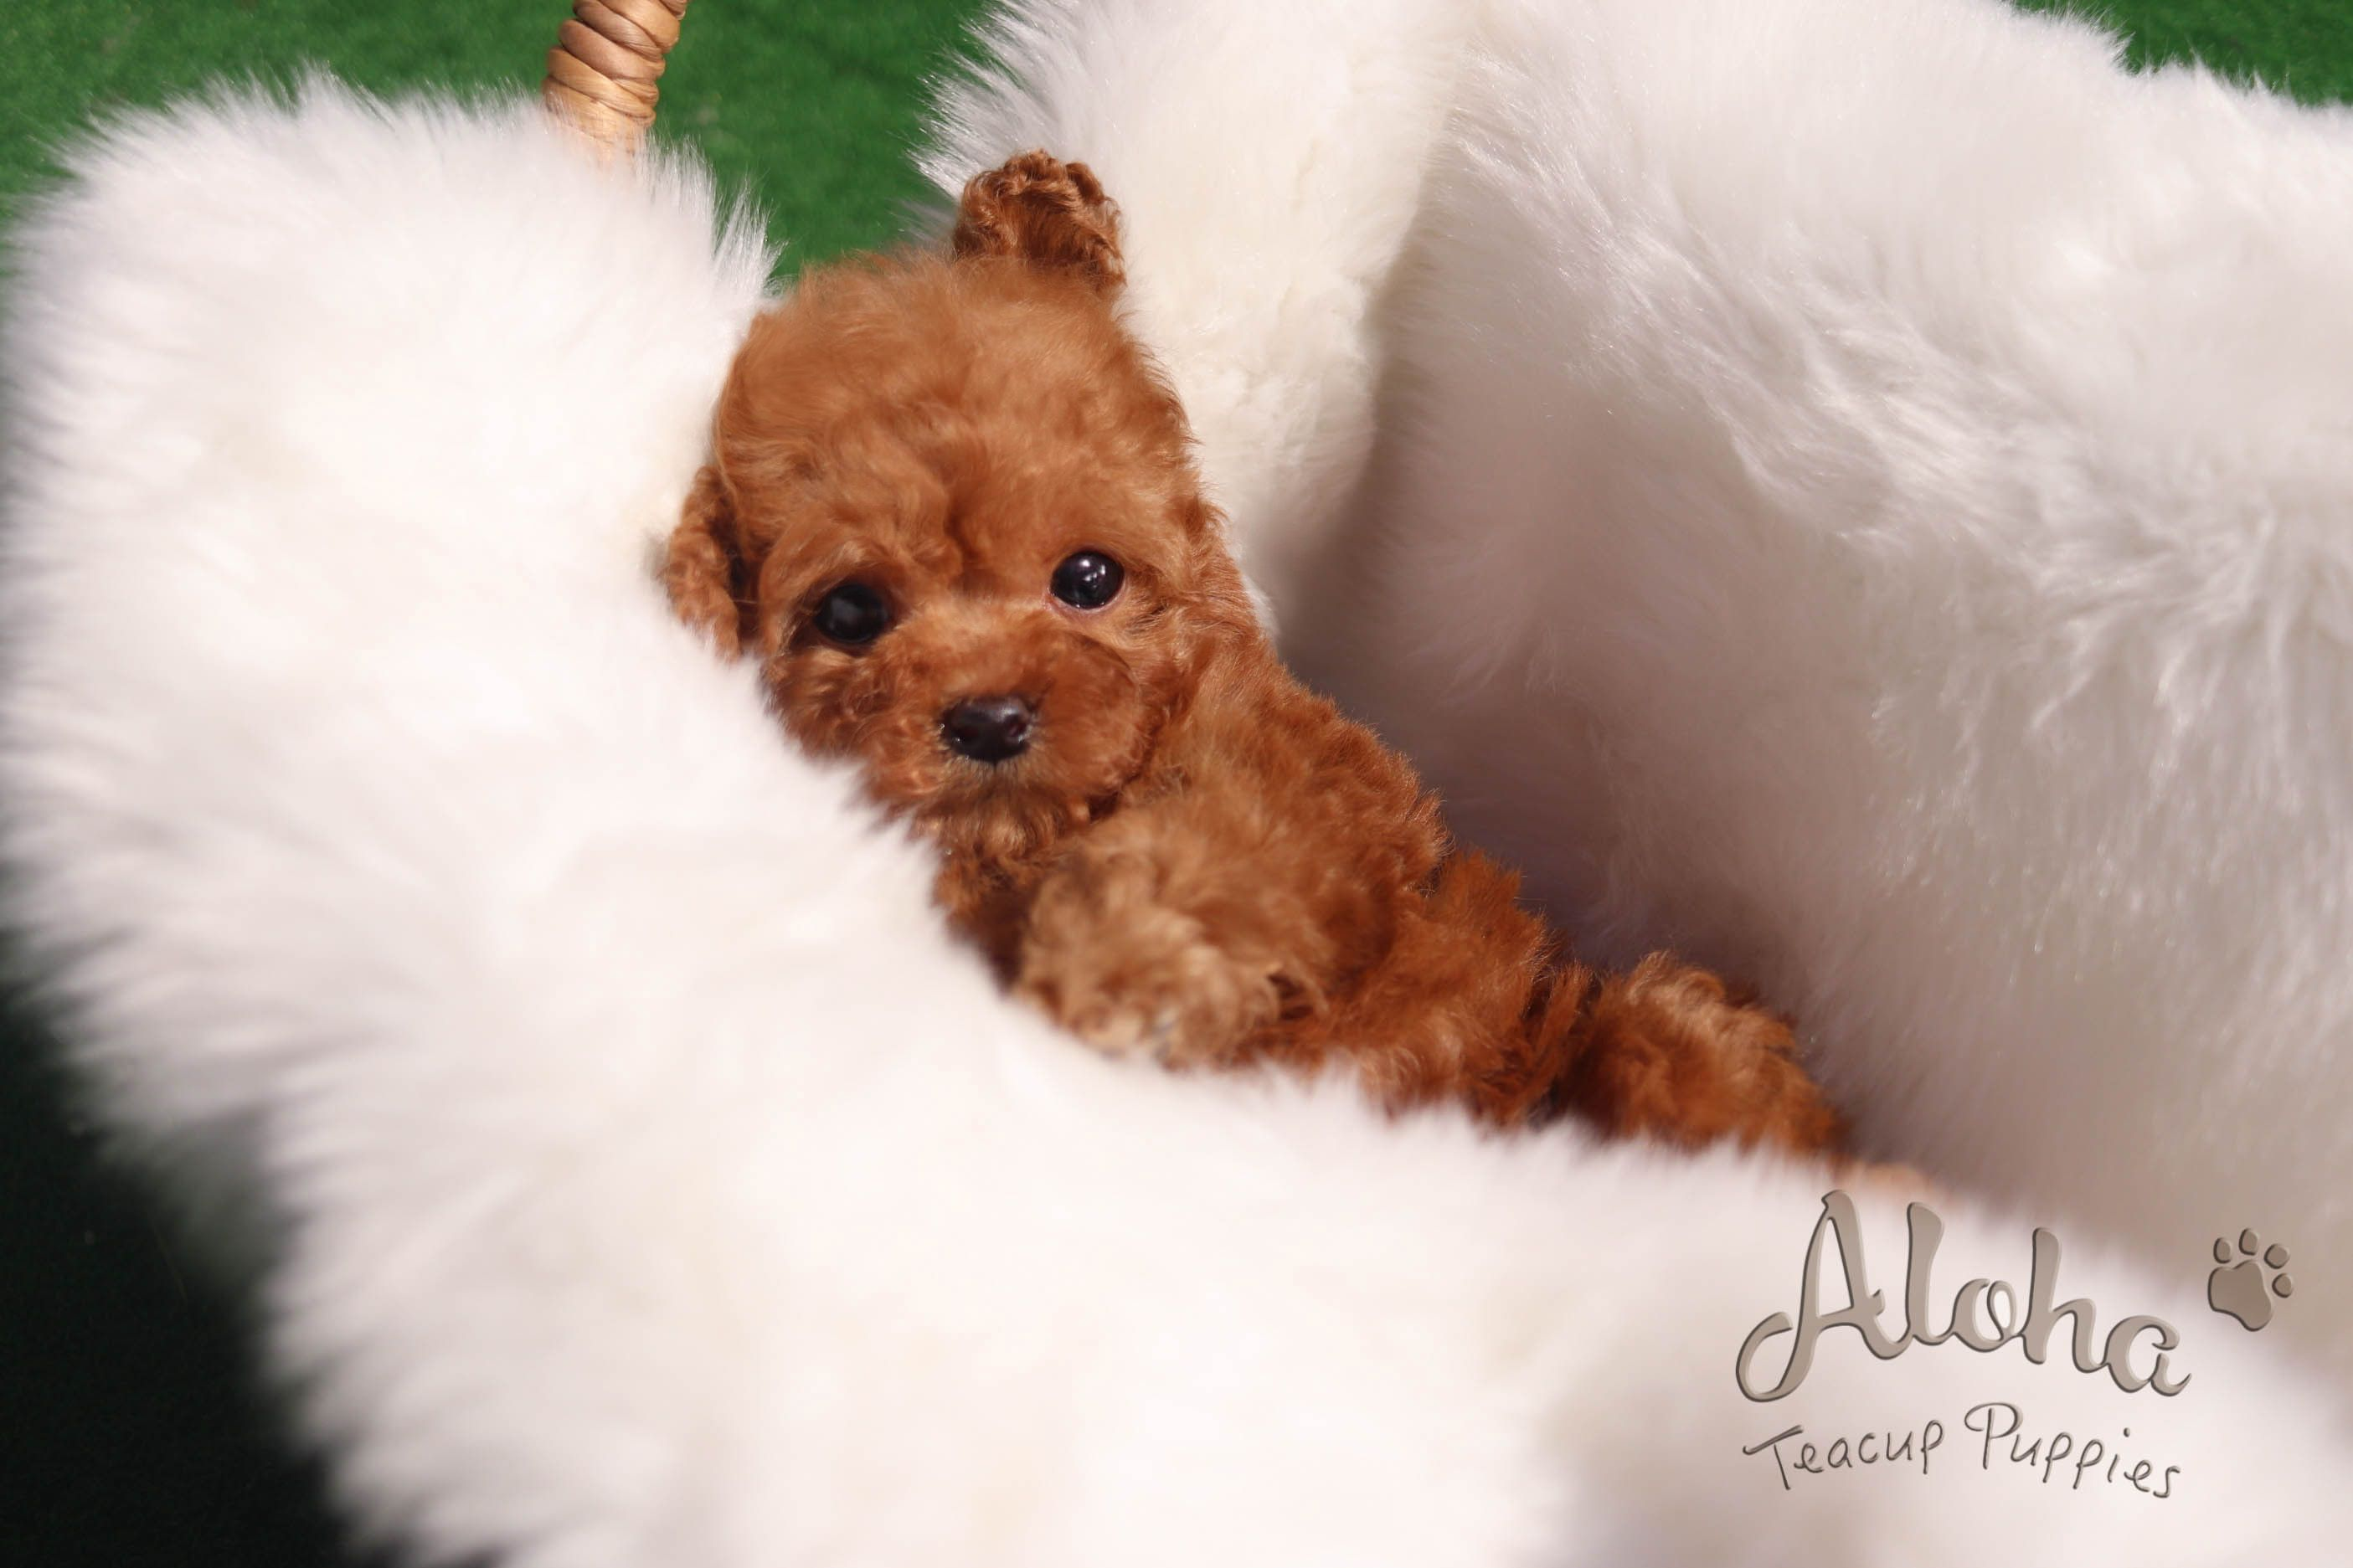 Pin By Lauren Hemple On Pups Teacup Puppies Teacup Puppies For Sale Puppies